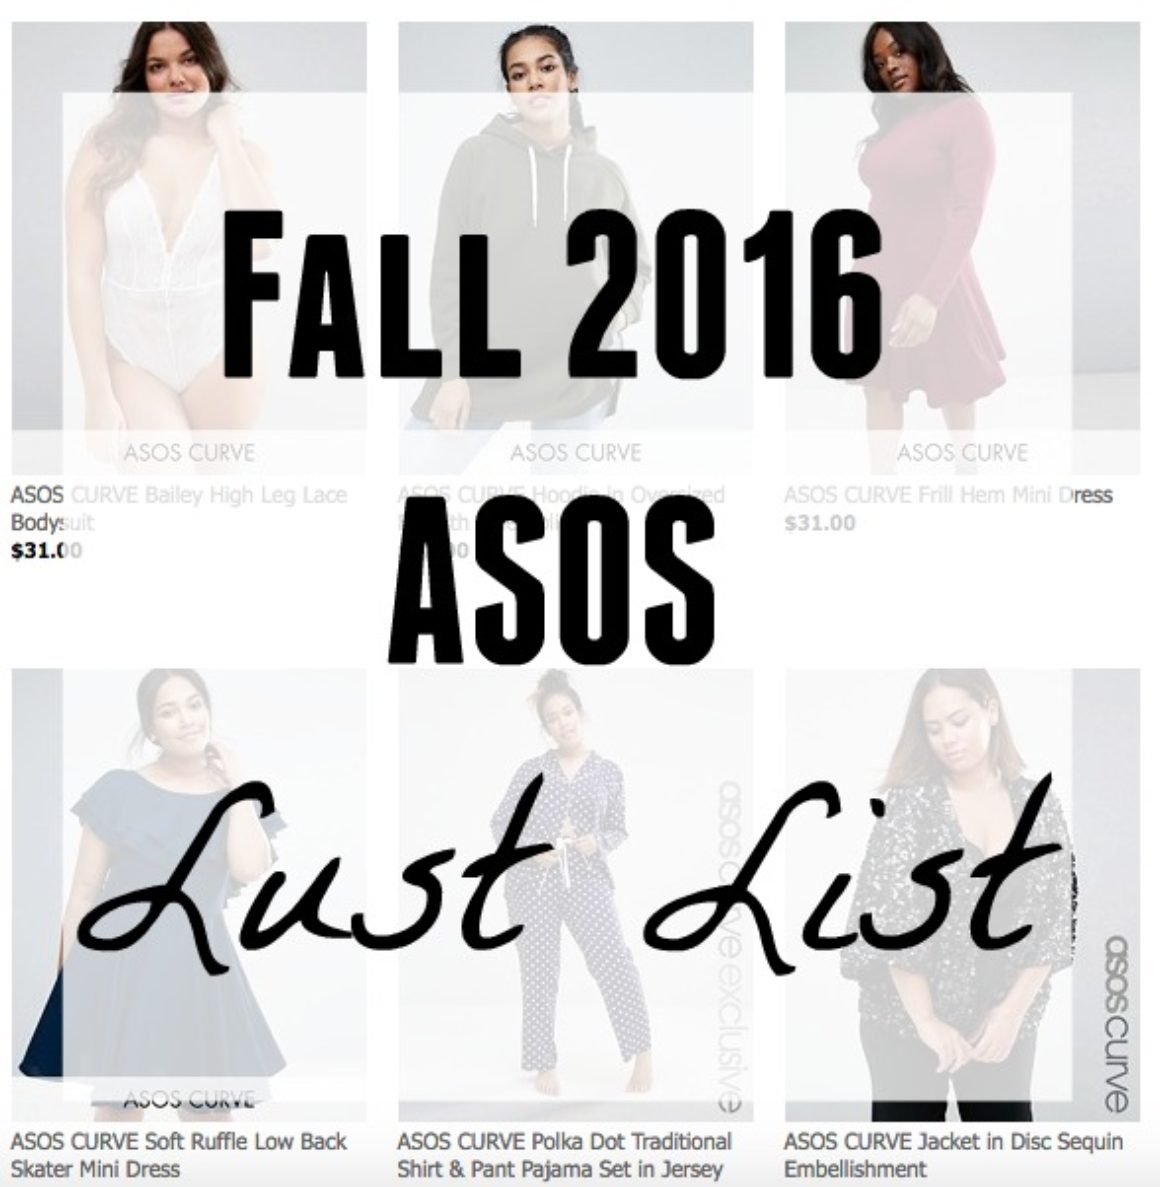 Lust List: ASOS Fall 2016